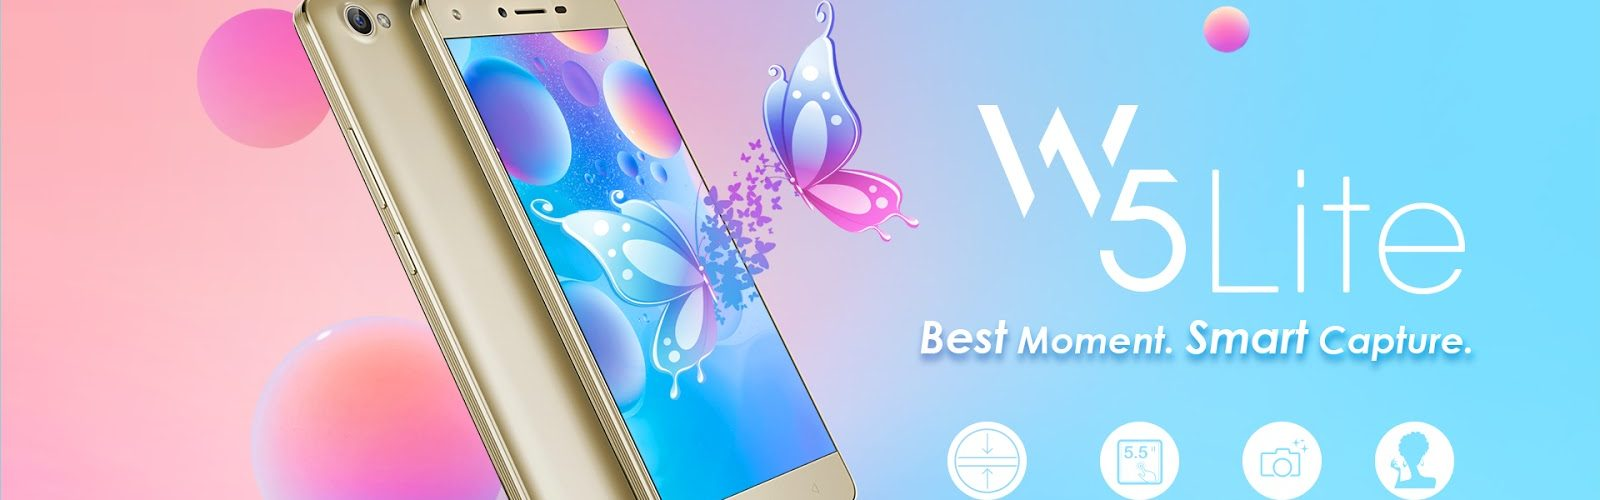 Tecno W5 Lite Specs and Price - Nigeria Tech Zone